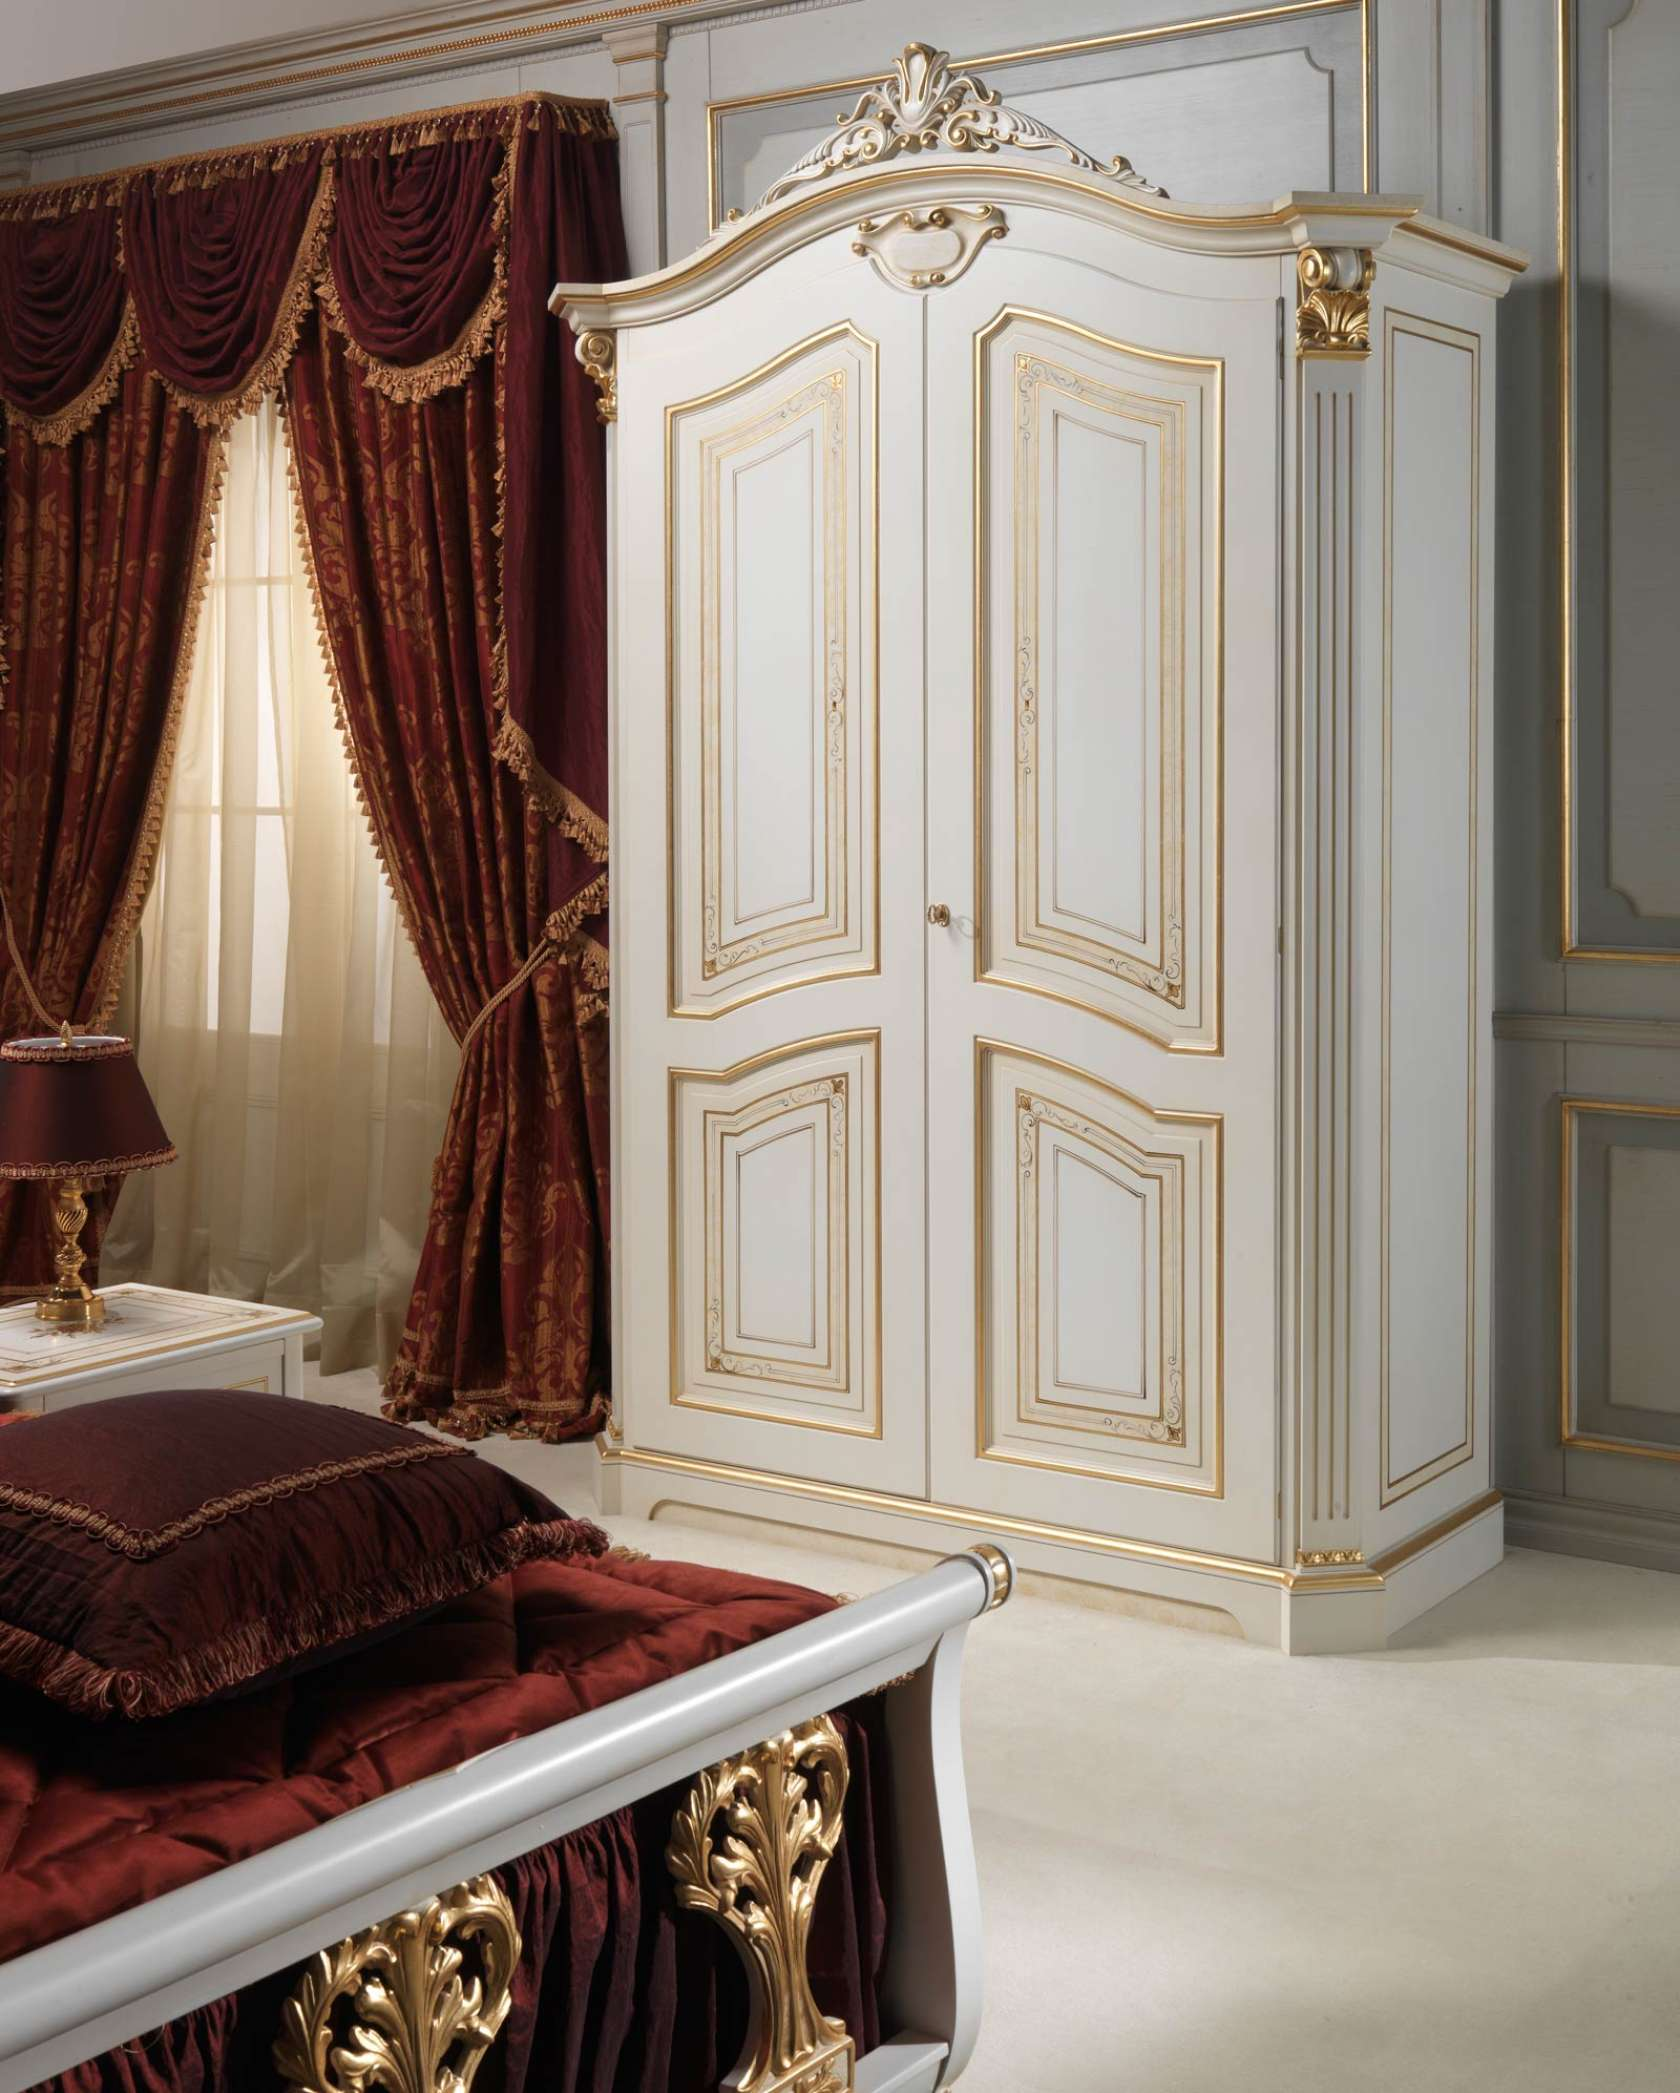 Chambre coucher classique rubens dans le style du xviiie for Chambre in french